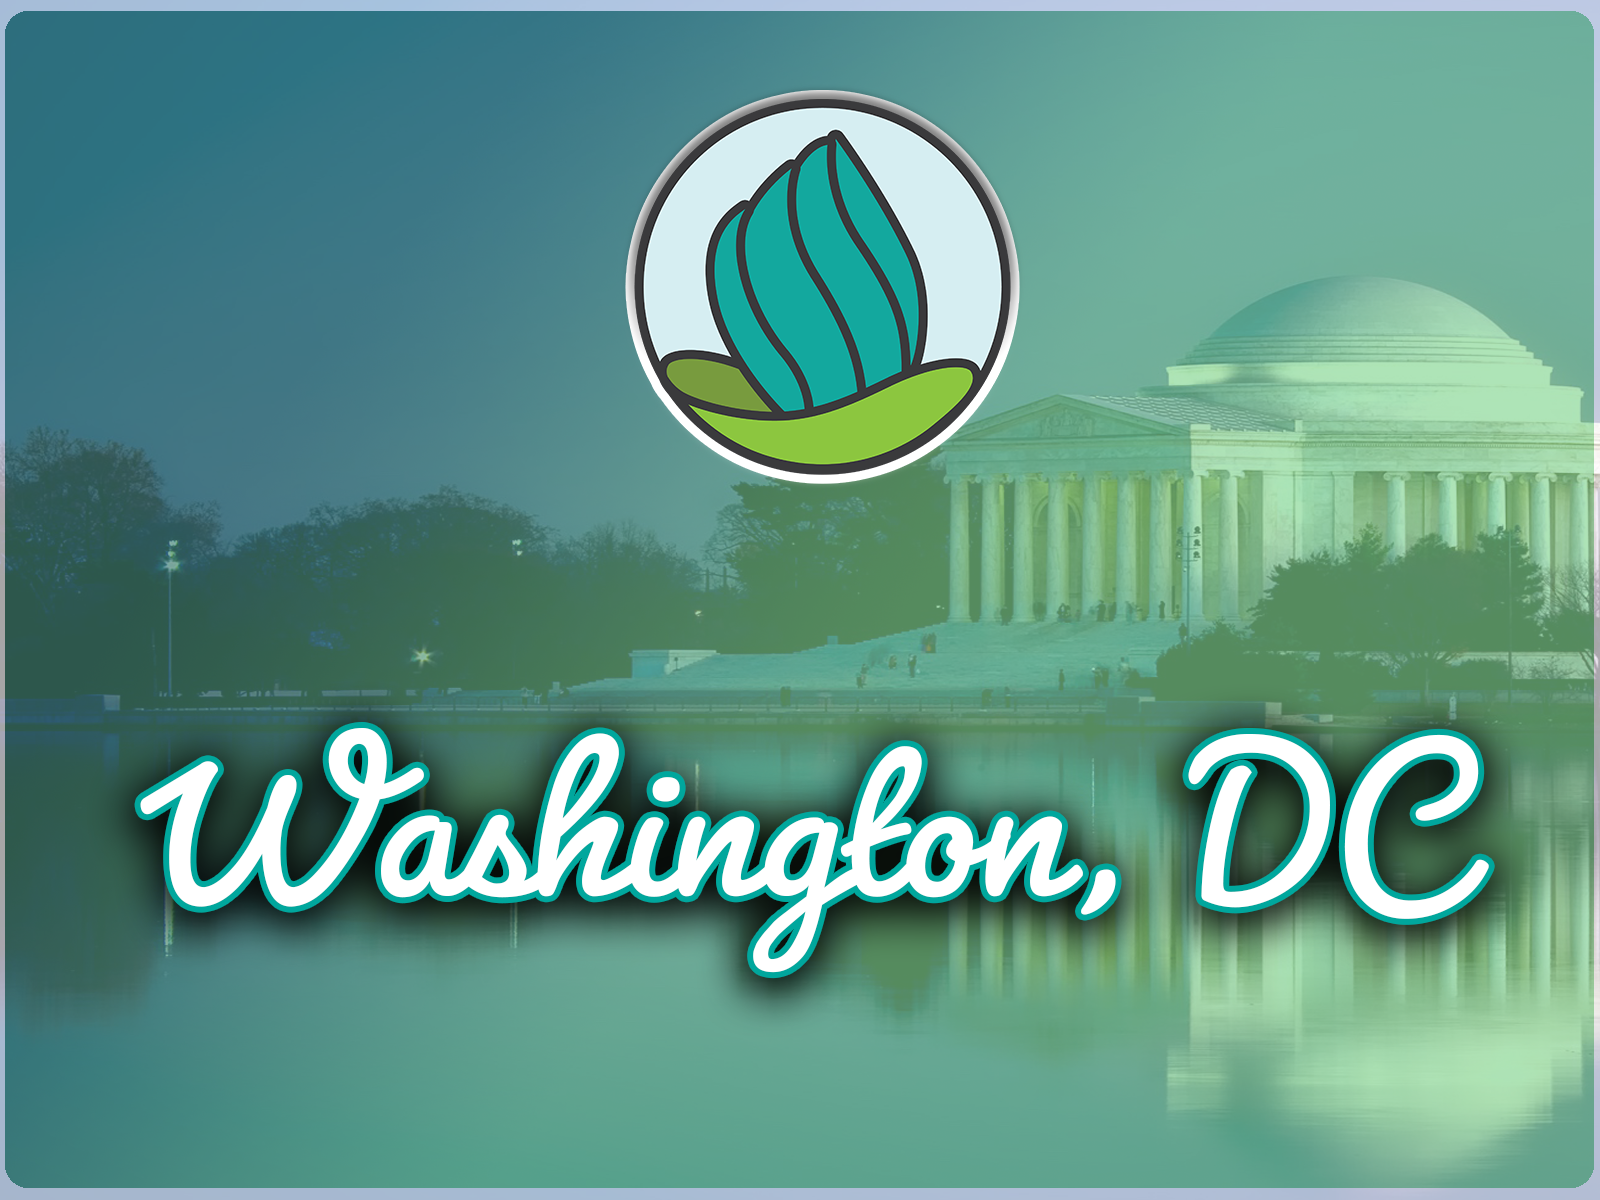 Image of Washington DC and a blue-green gradient overlay, and the words 'Washington DC' in cursive and NDC logo on top